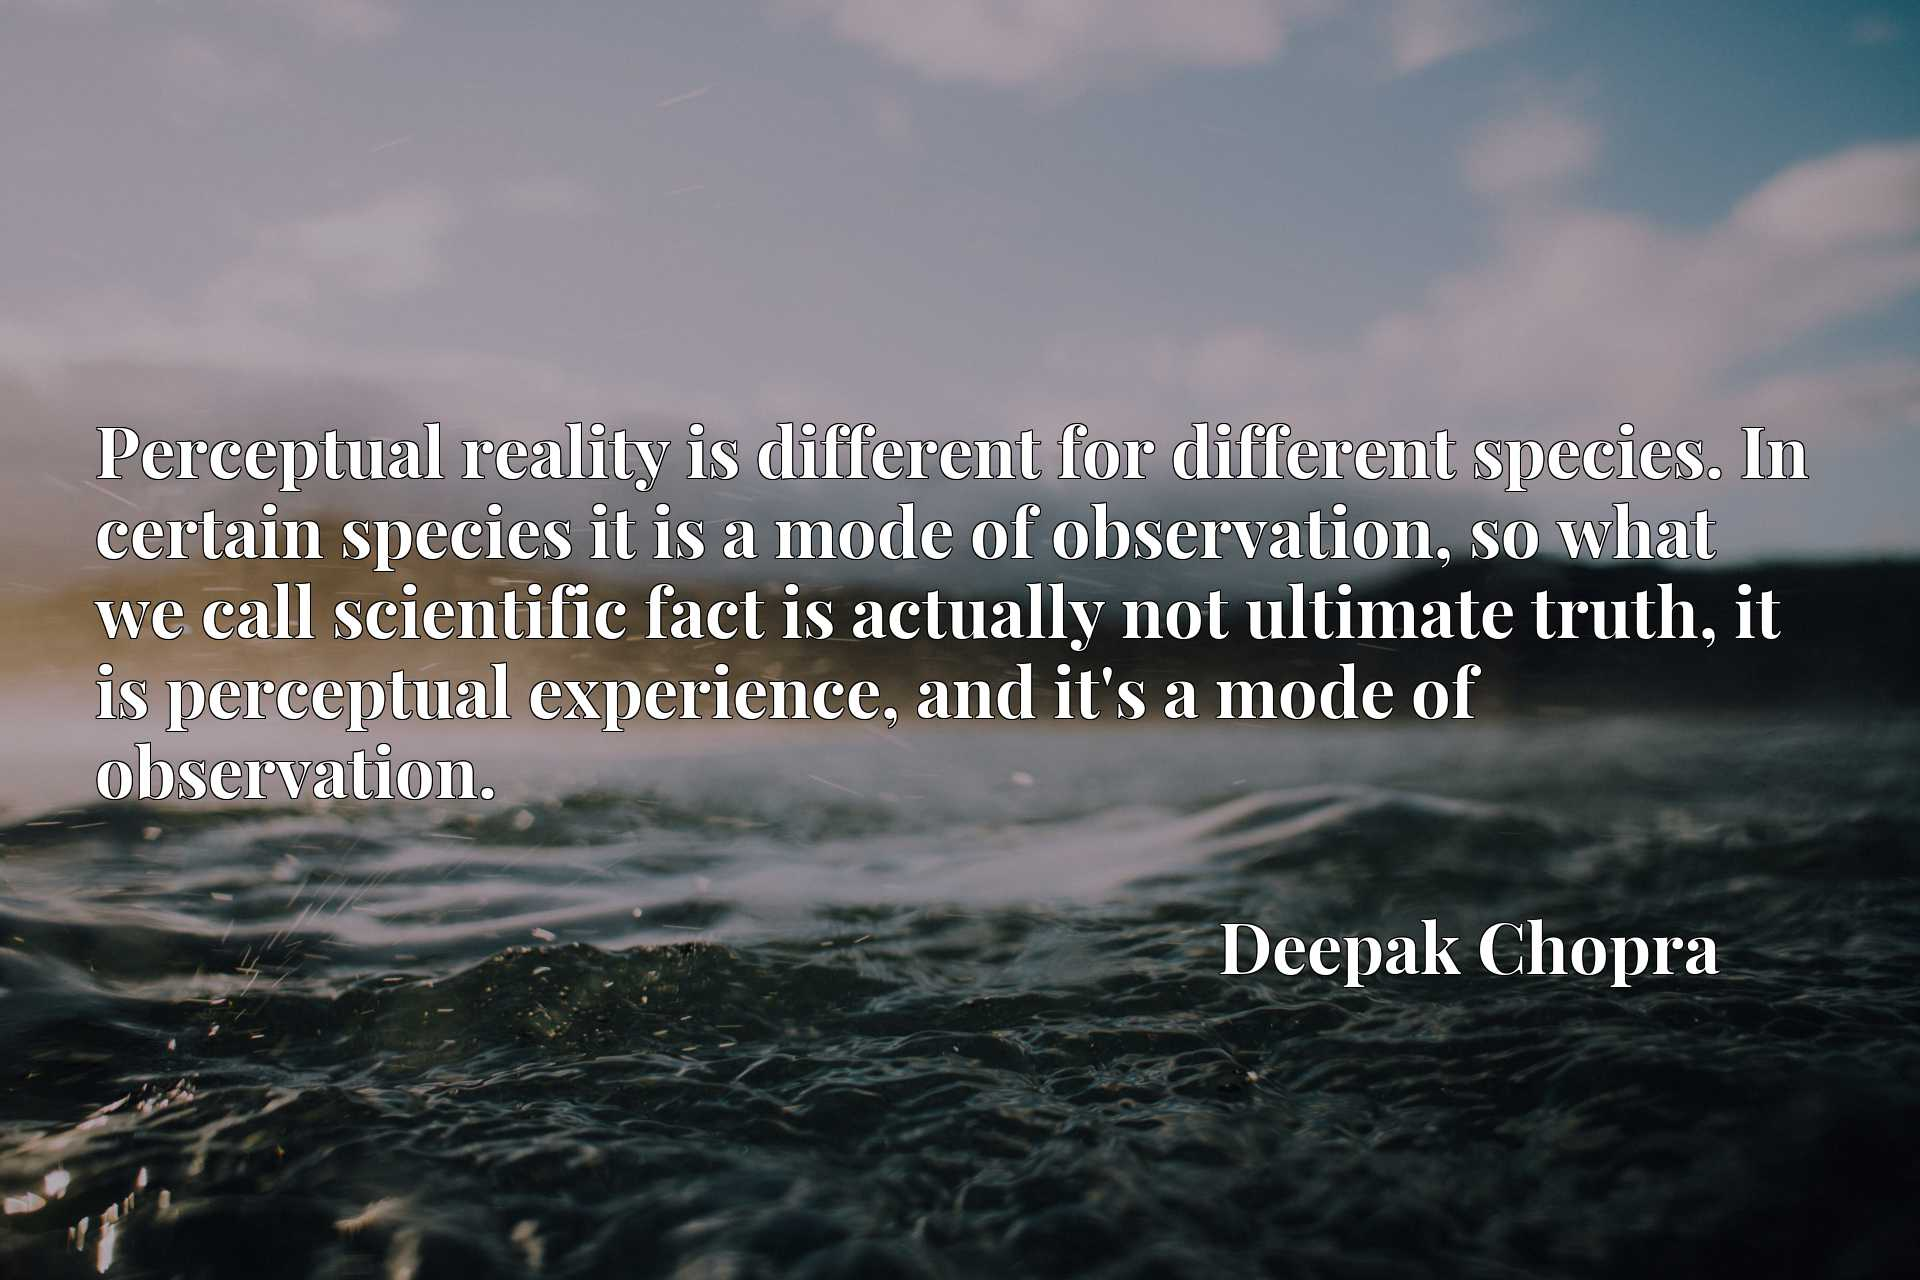 Perceptual reality is different for different species. In certain species it is a mode of observation, so what we call scientific fact is actually not ultimate truth, it is perceptual experience, and it's a mode of observation.